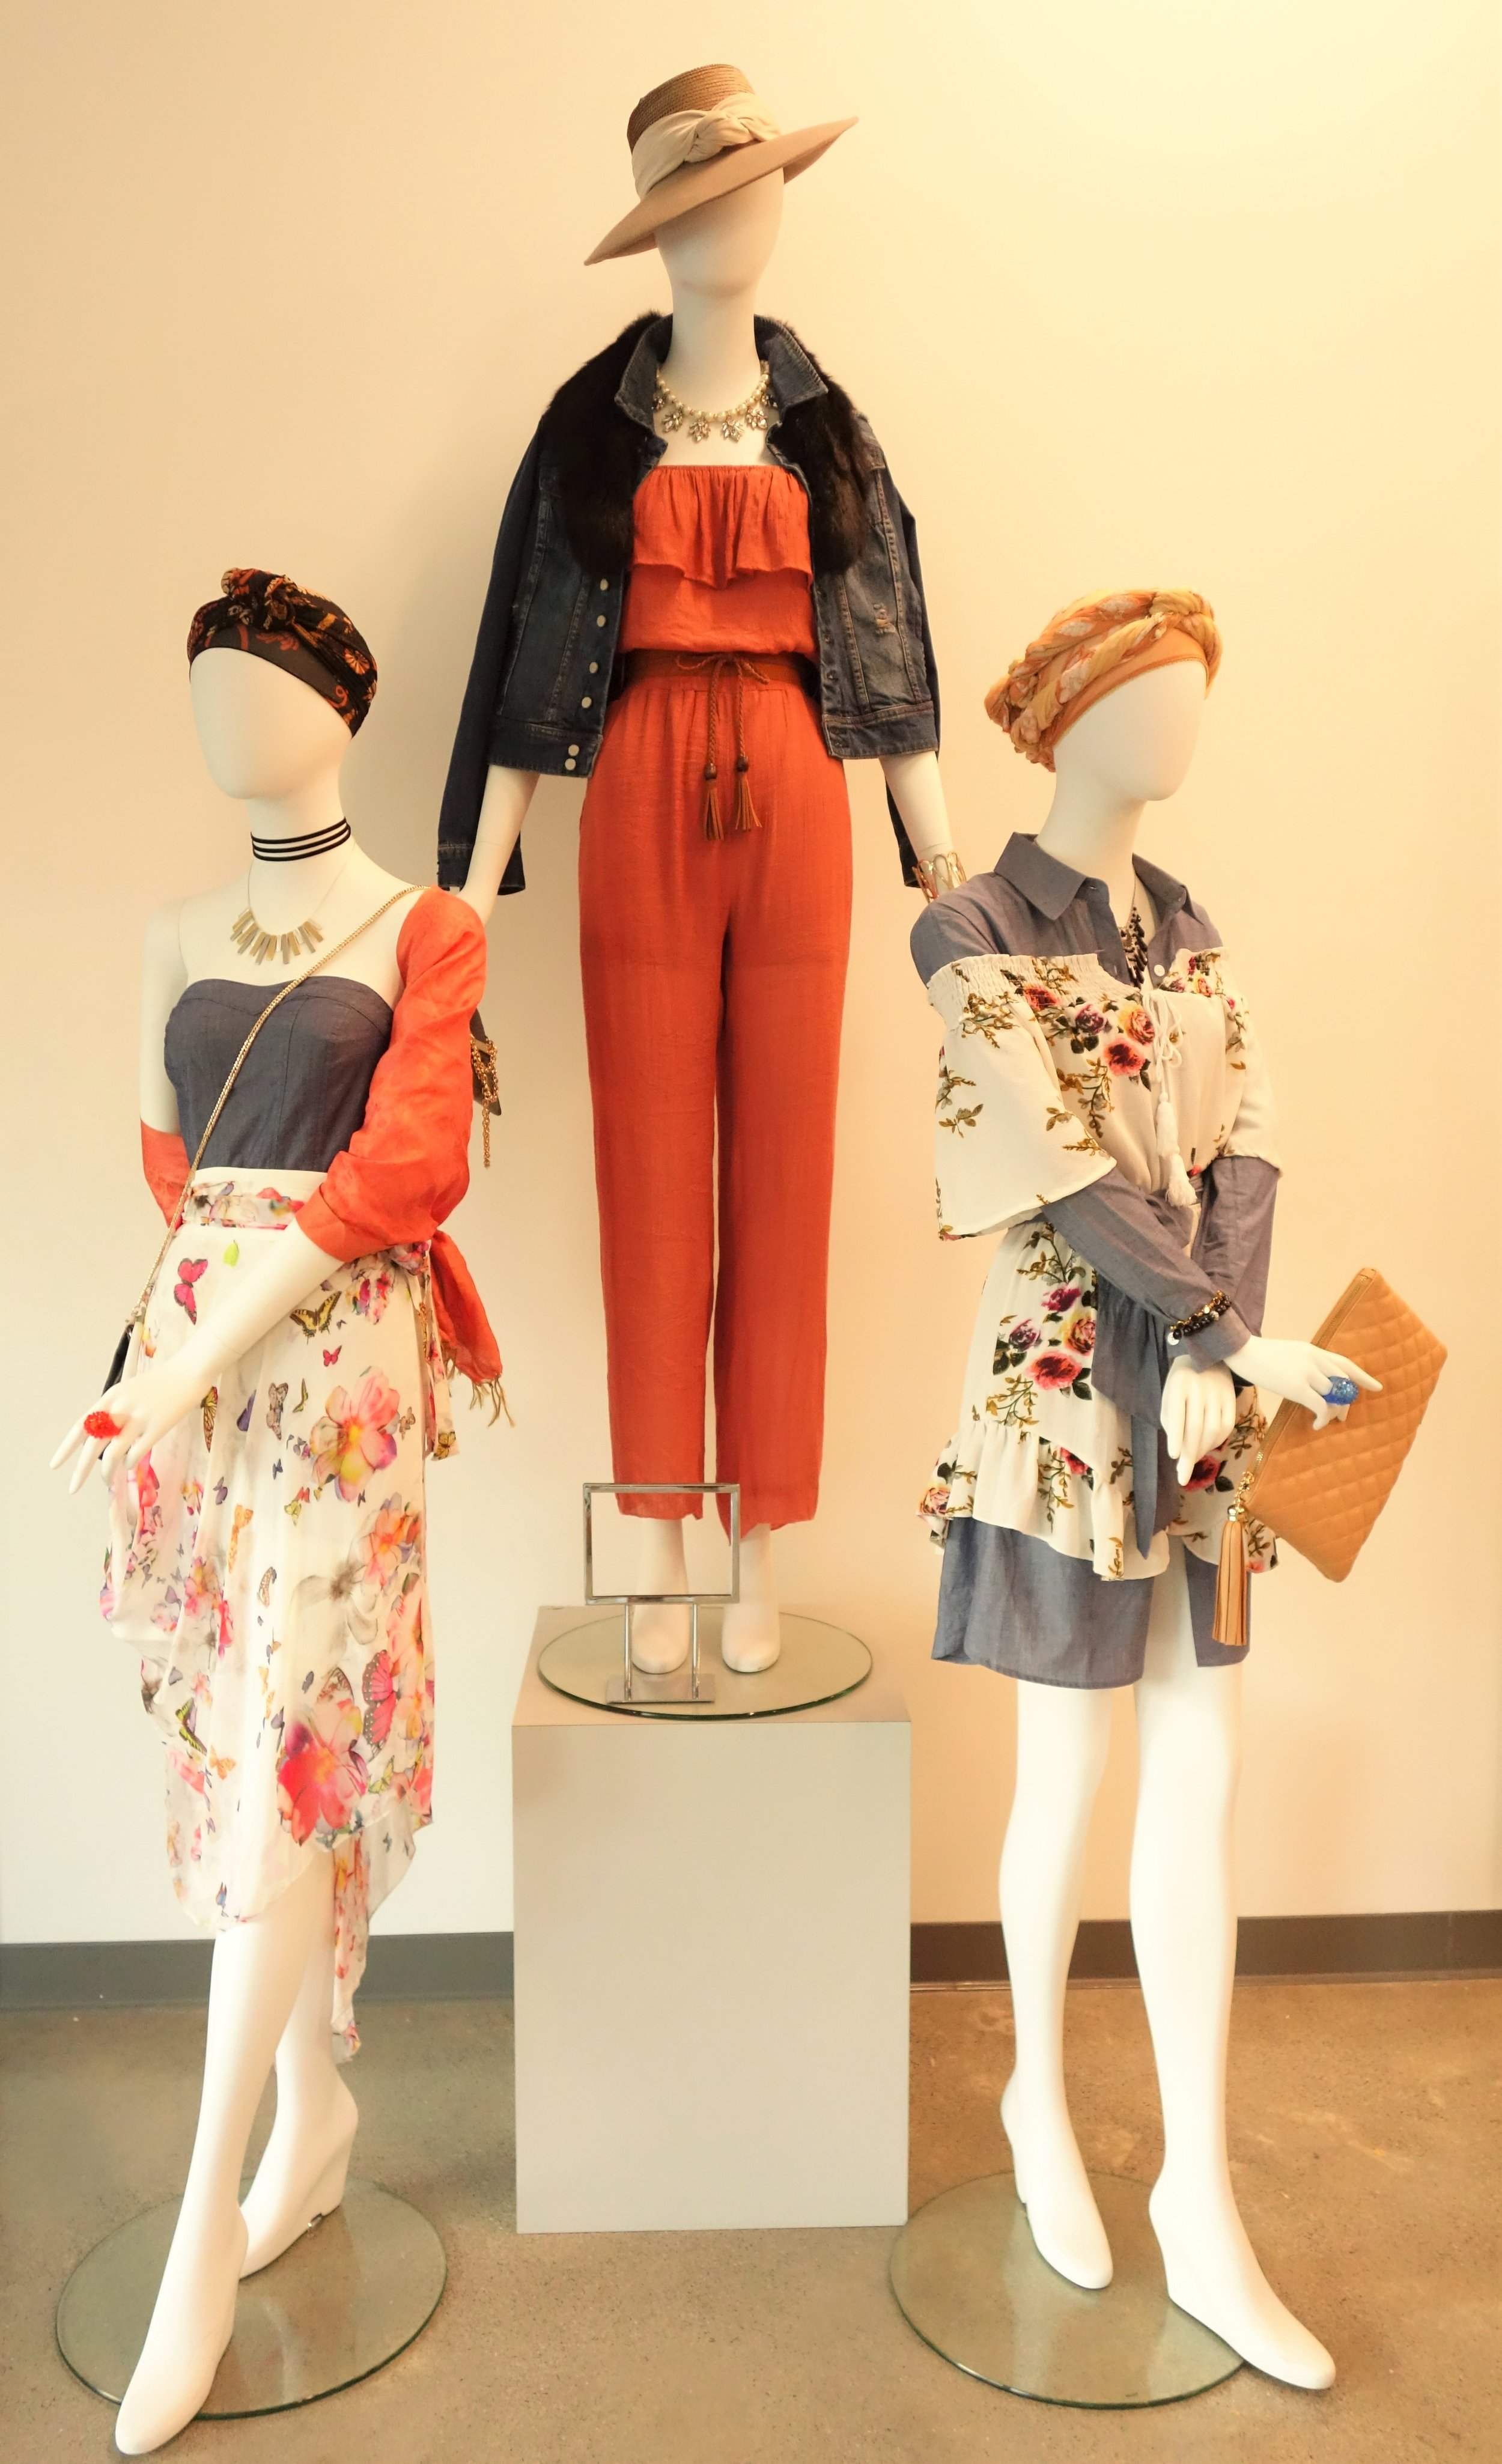 Mannequins at the Godwill San Rafael store